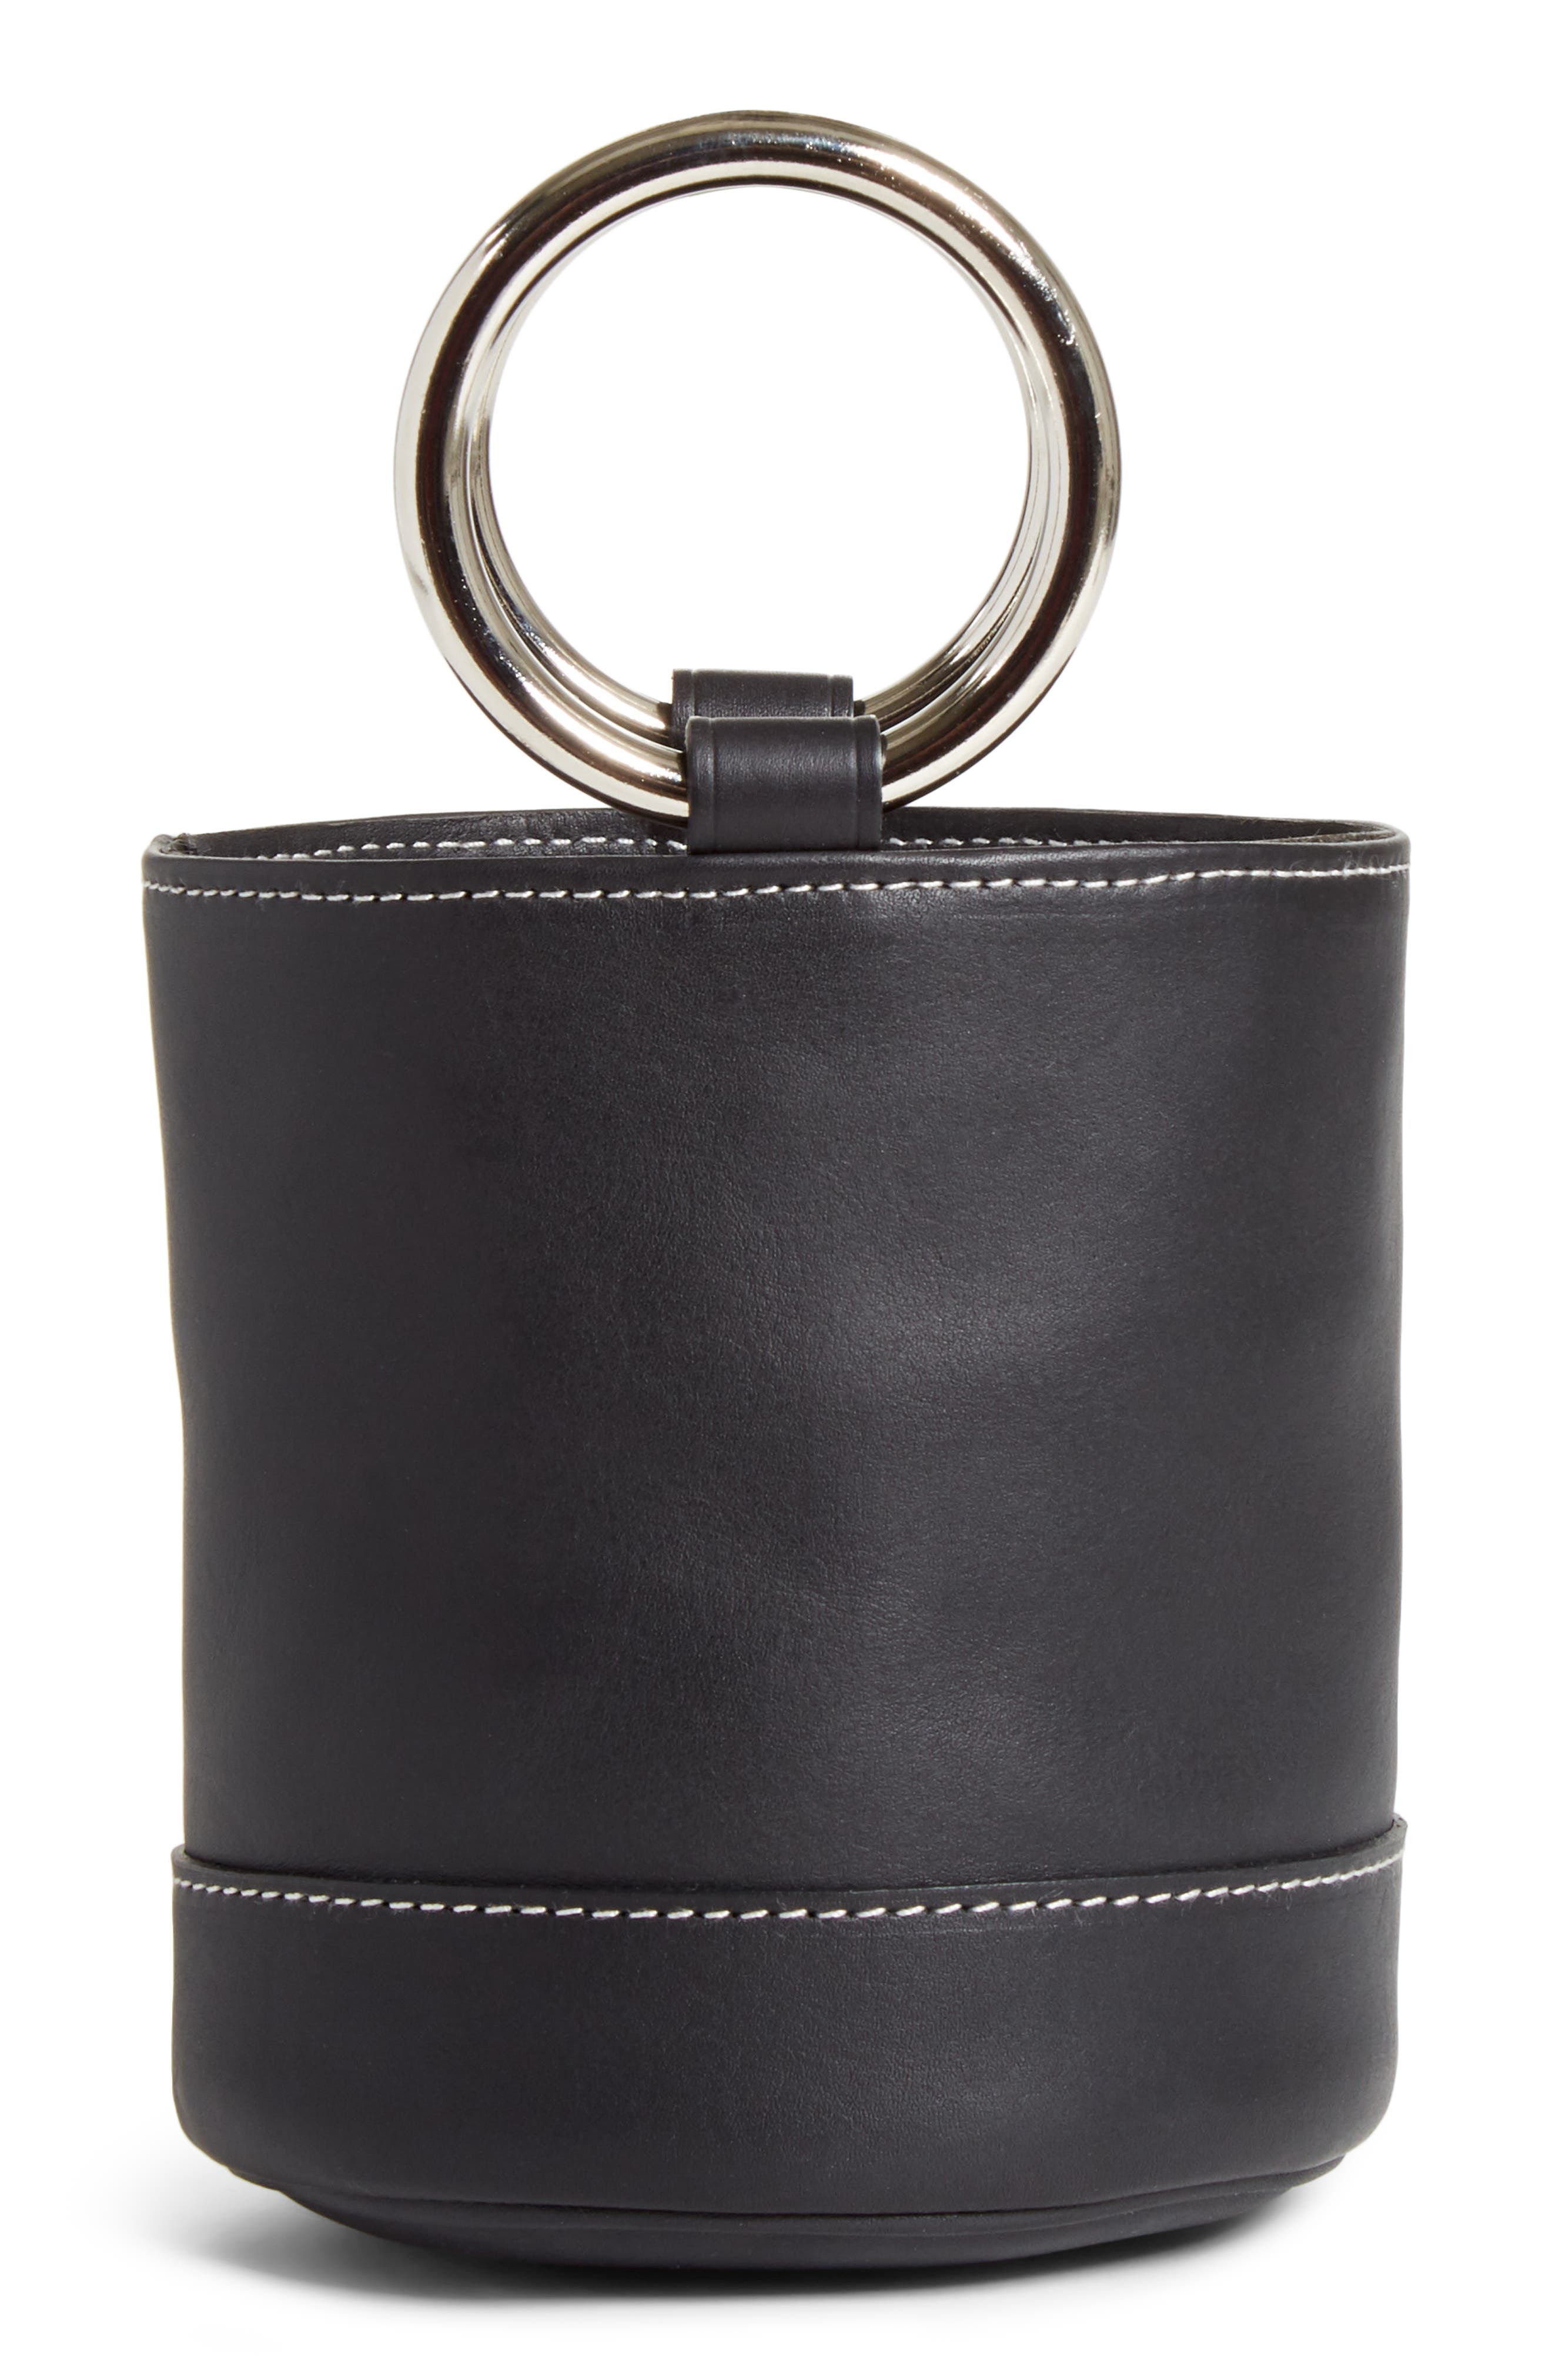 Bonsai 15 Calfskin Leather Bucket Bag,                             Alternate thumbnail 3, color,                             BLACK WITH WHITE STITCHING